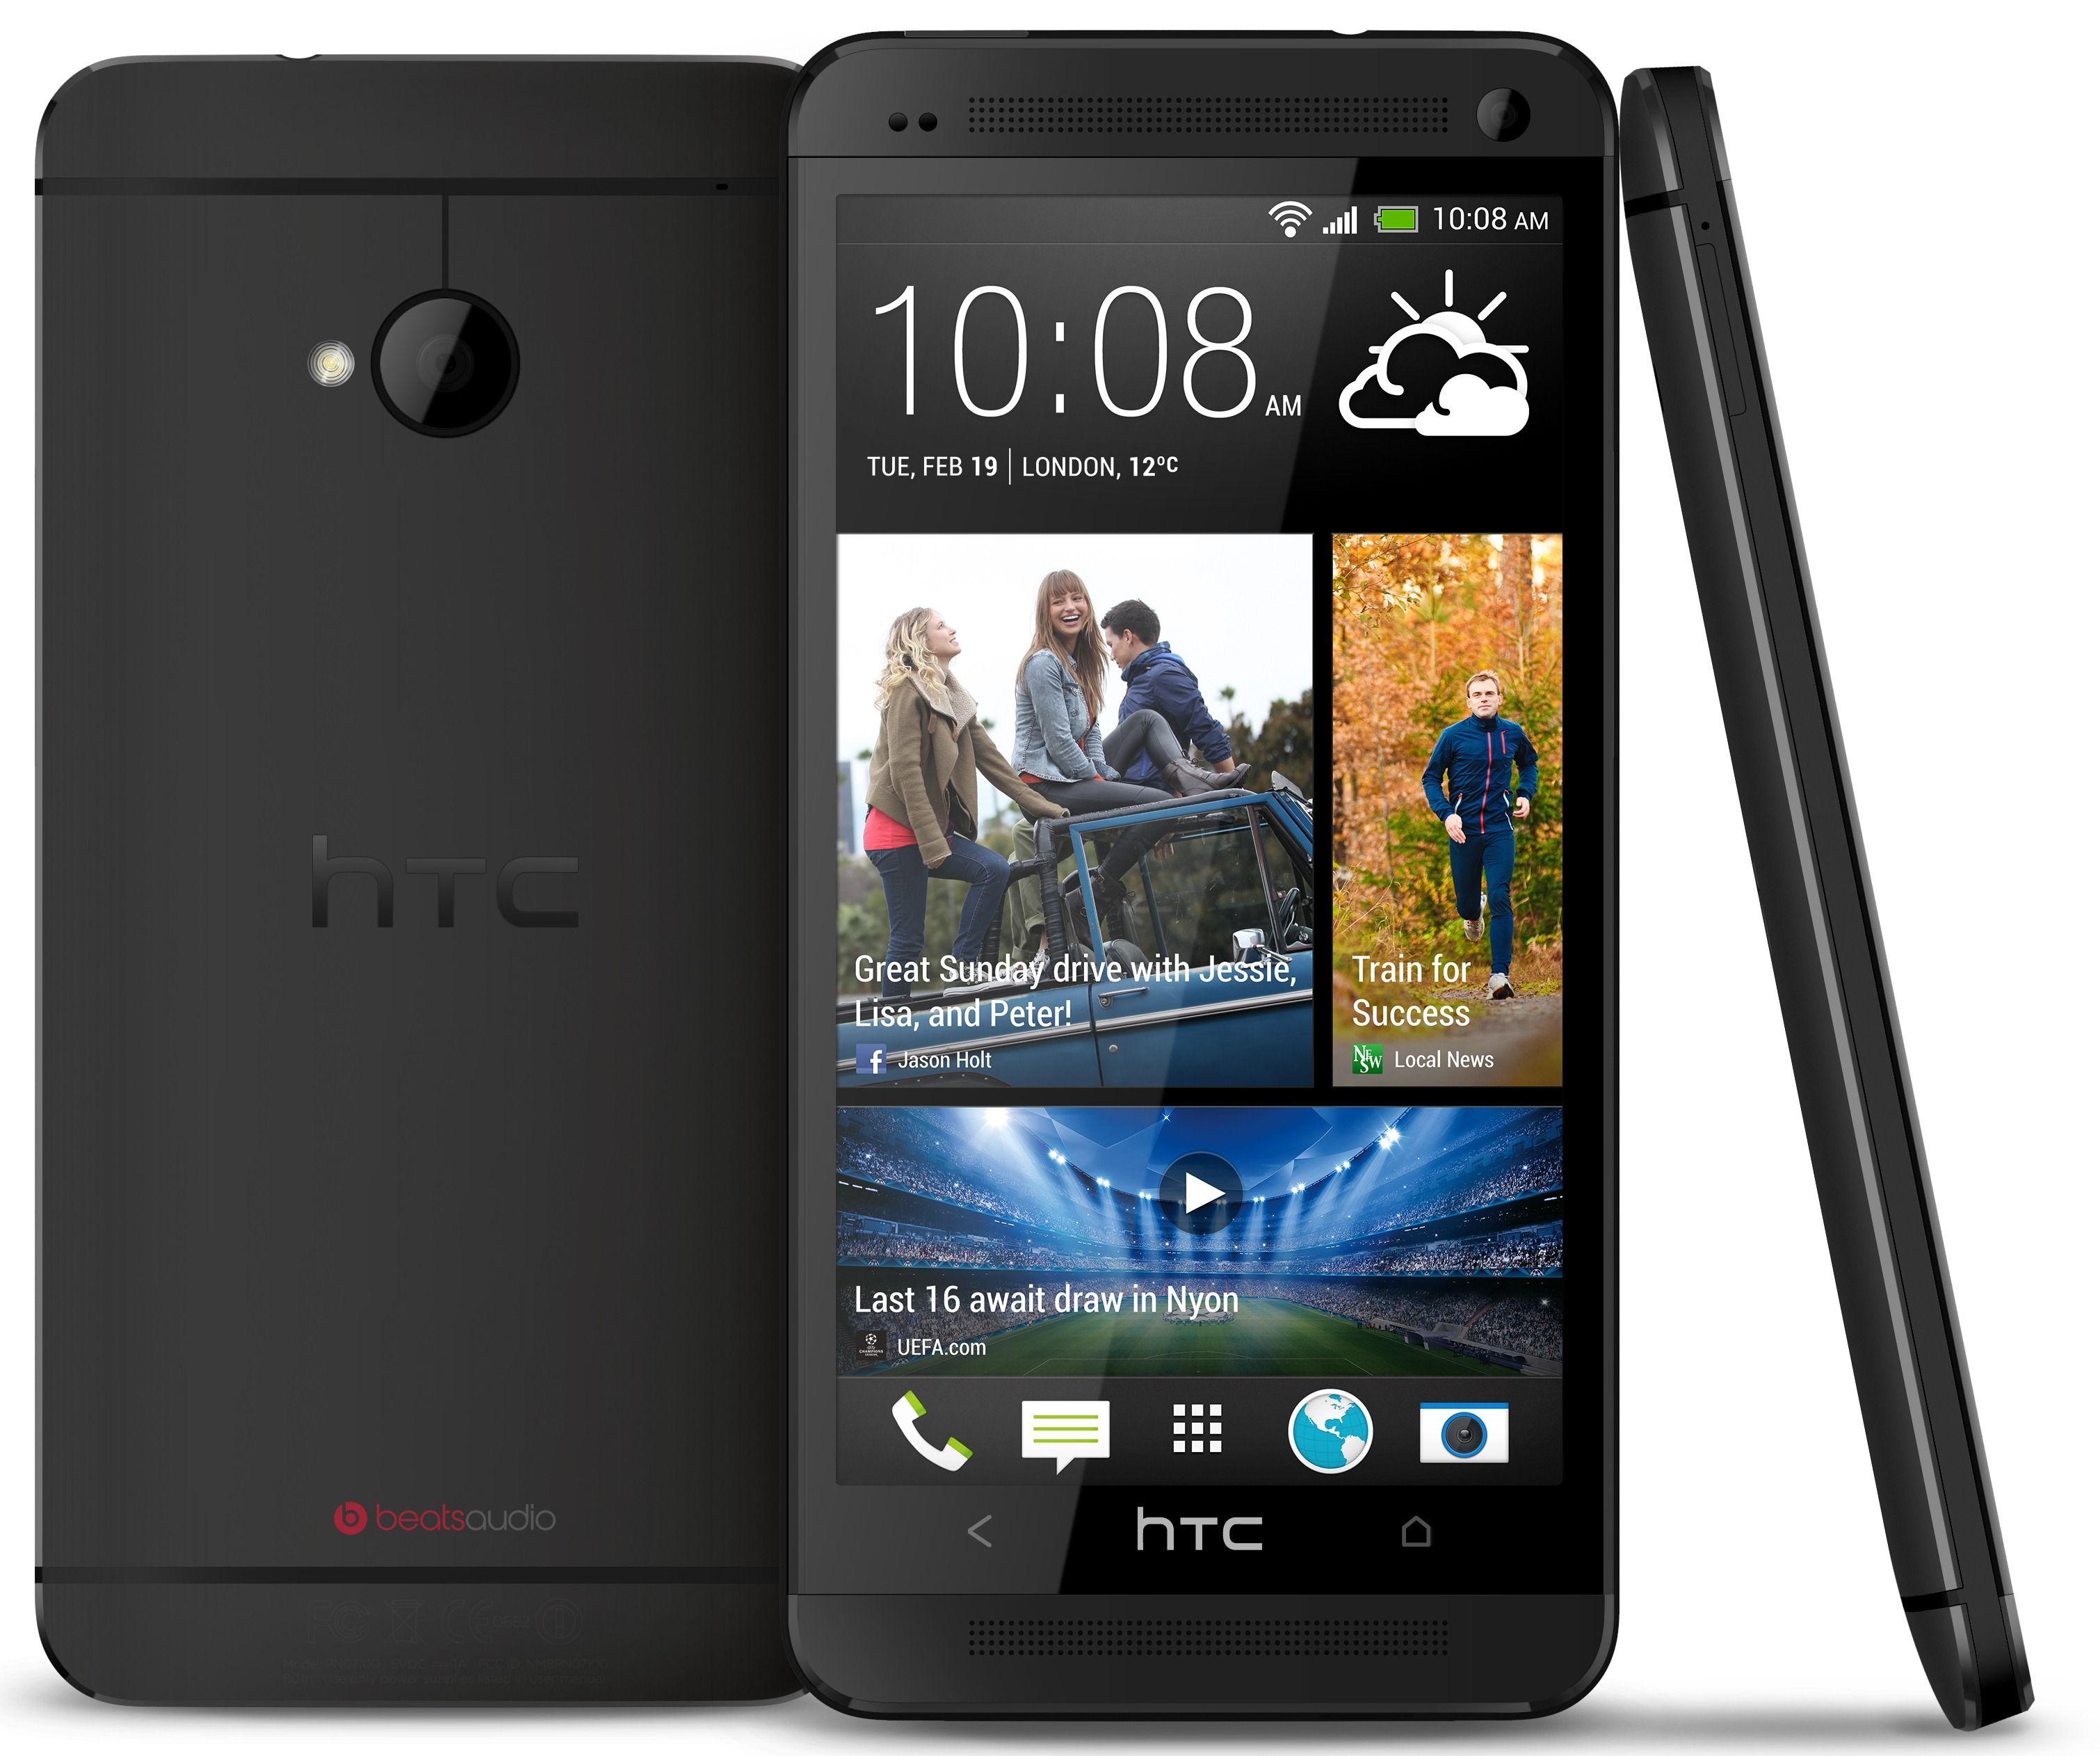 how to unlock an iphone without the password nexusae0 htc one 3v black jpg 3020 215 2525 eye 7681